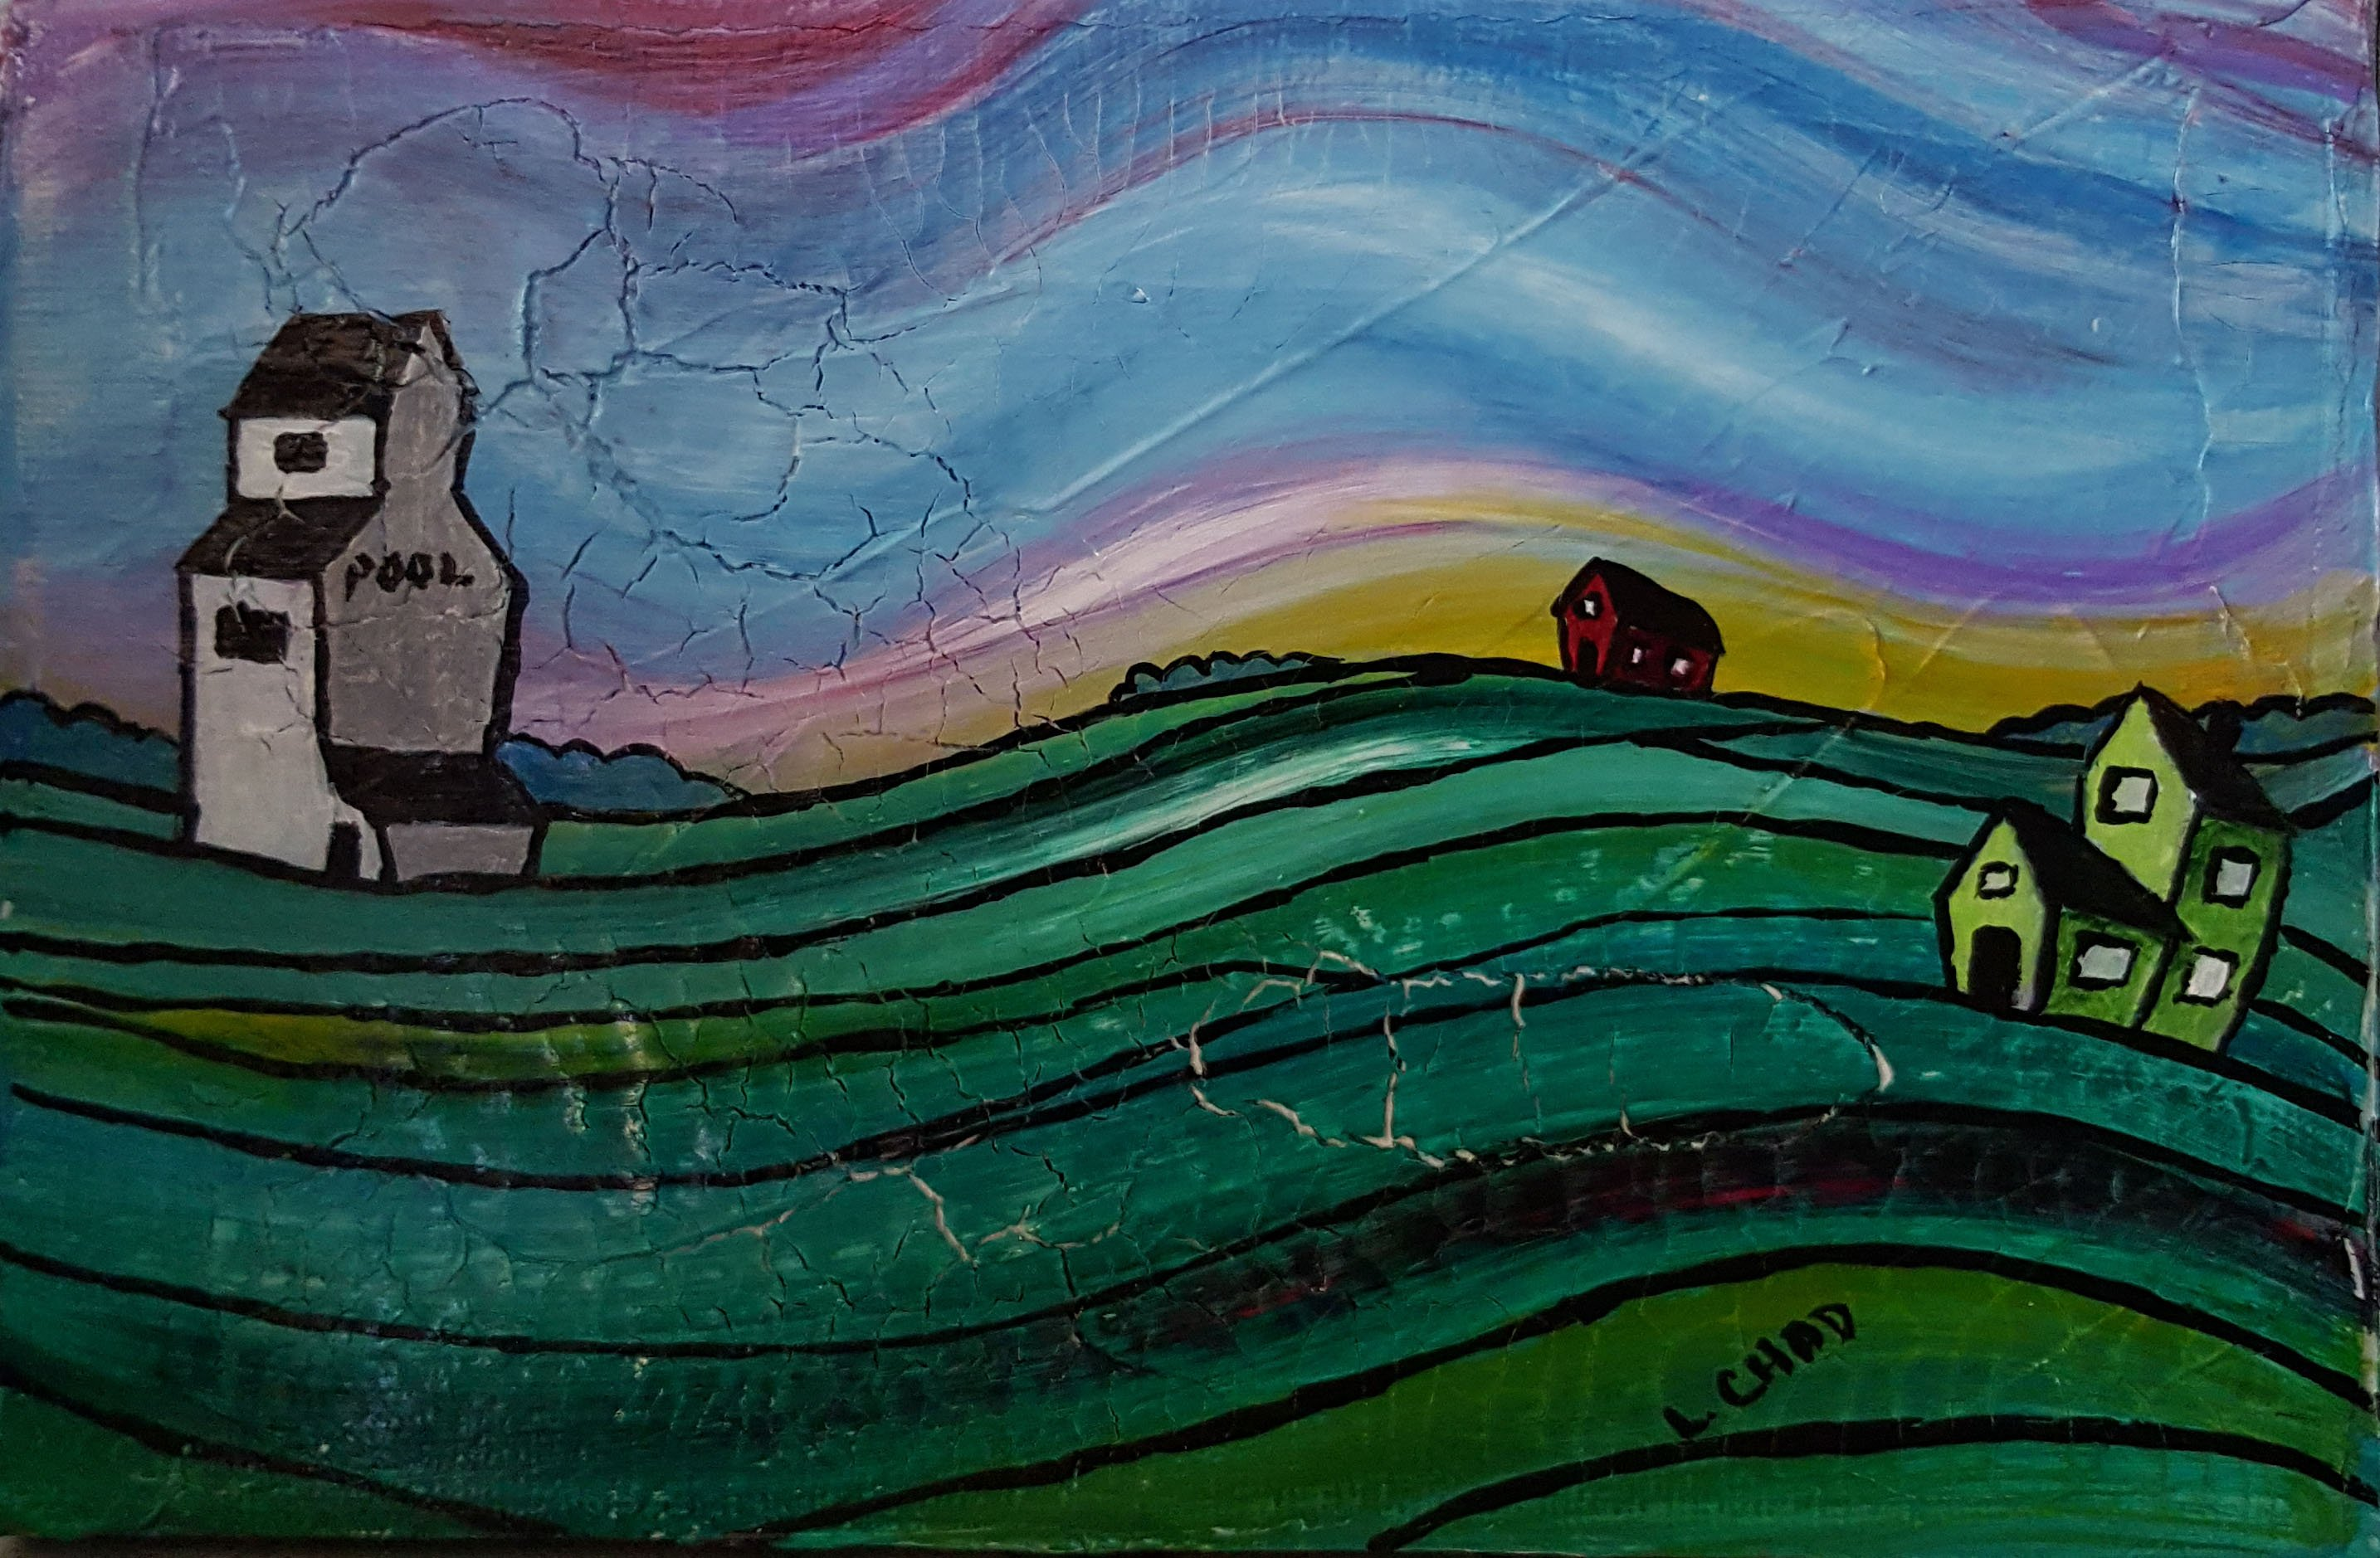 """Prairie Whimsy"" [2015] Acrylic on canvas. 7"" x 4.75"" (unframed with easel) SOLD"